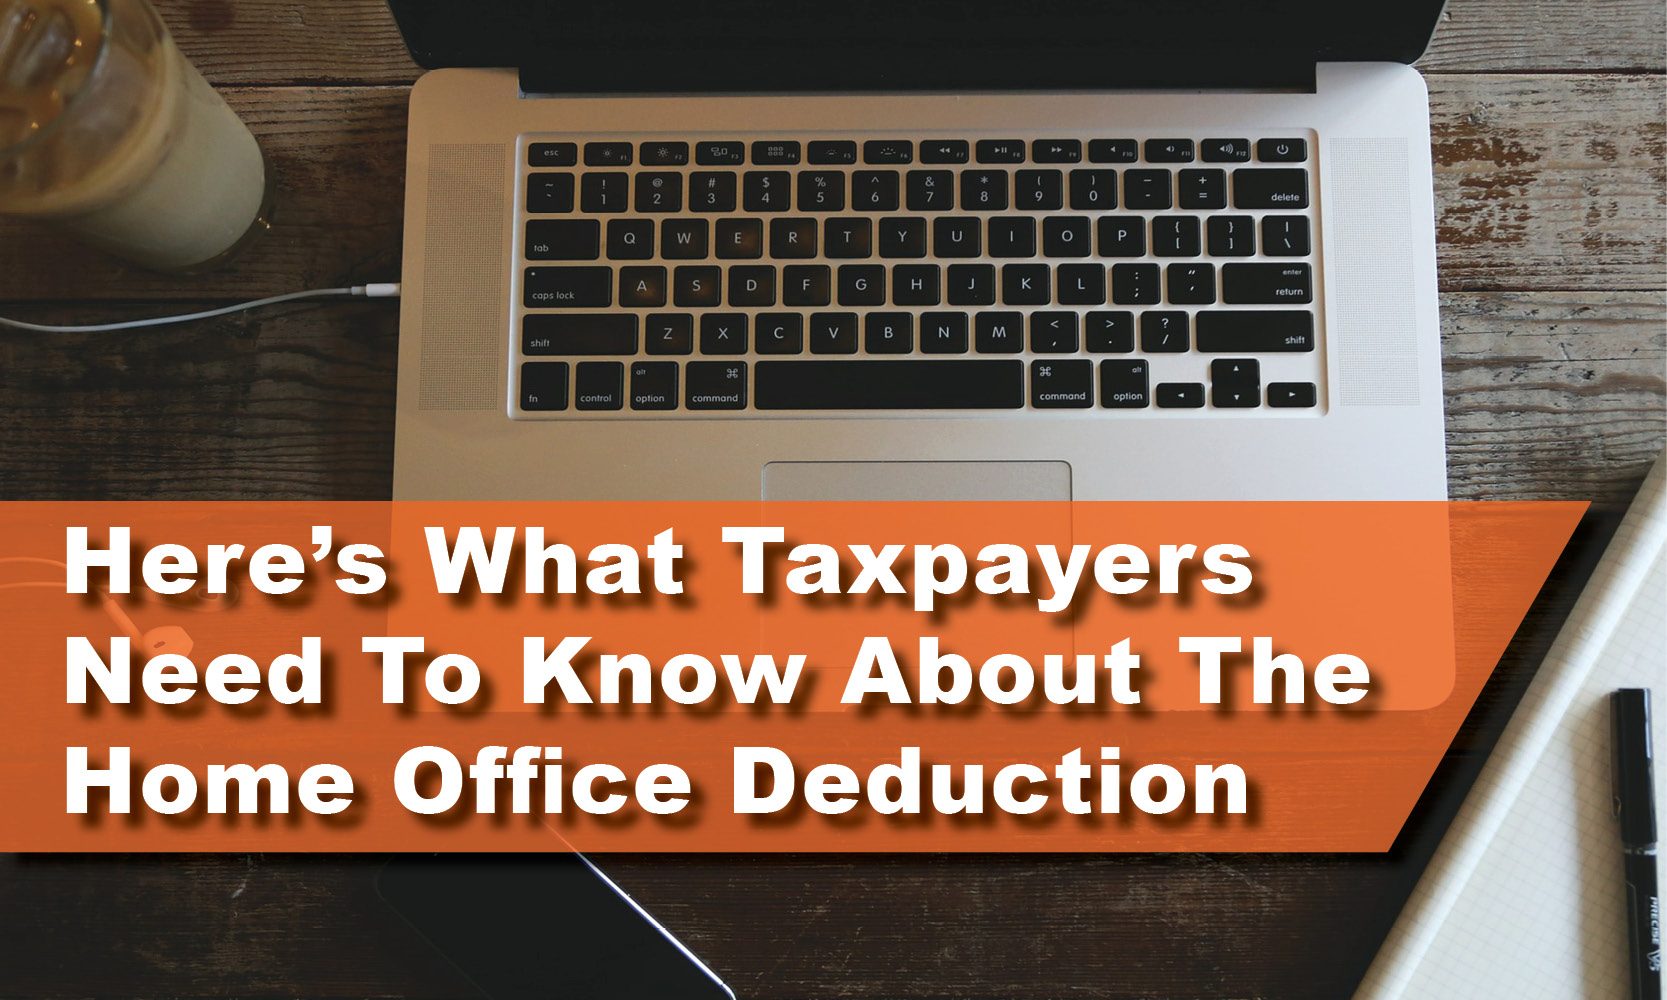 Home office deduction 2020